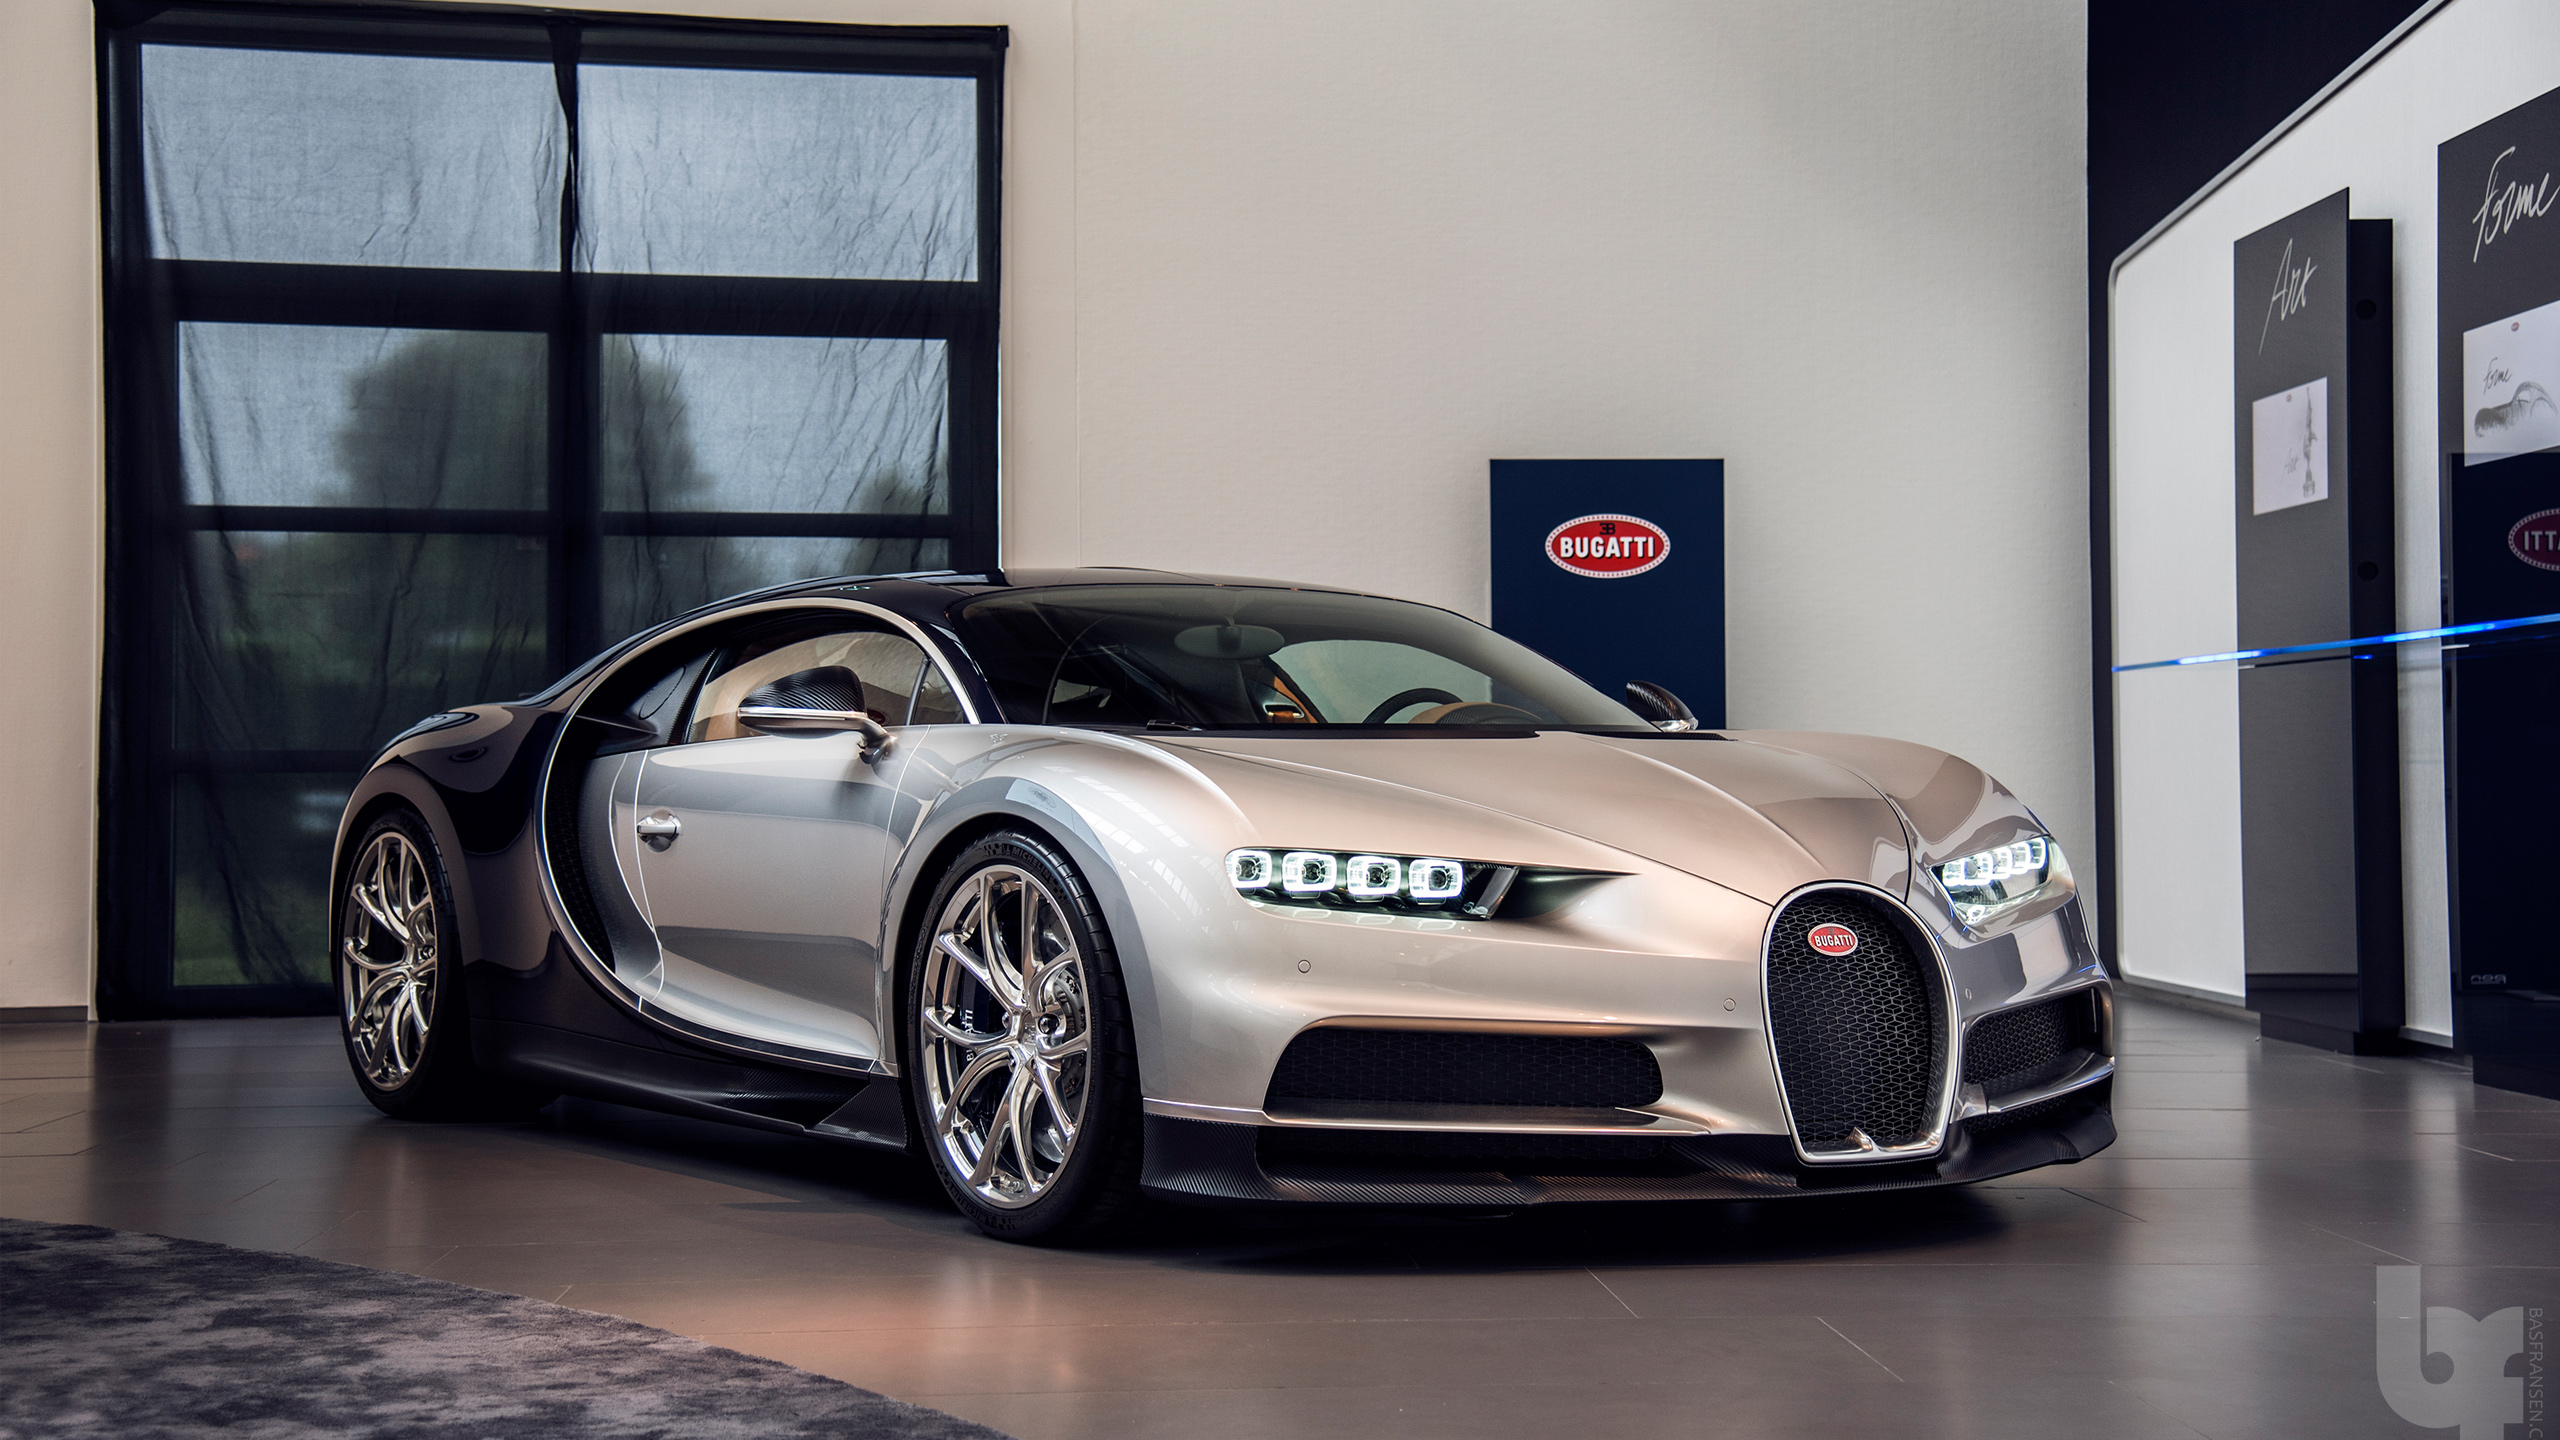 Bugatti Chiron Most Expensive Car Wallpaper Hd Car Wallpapers